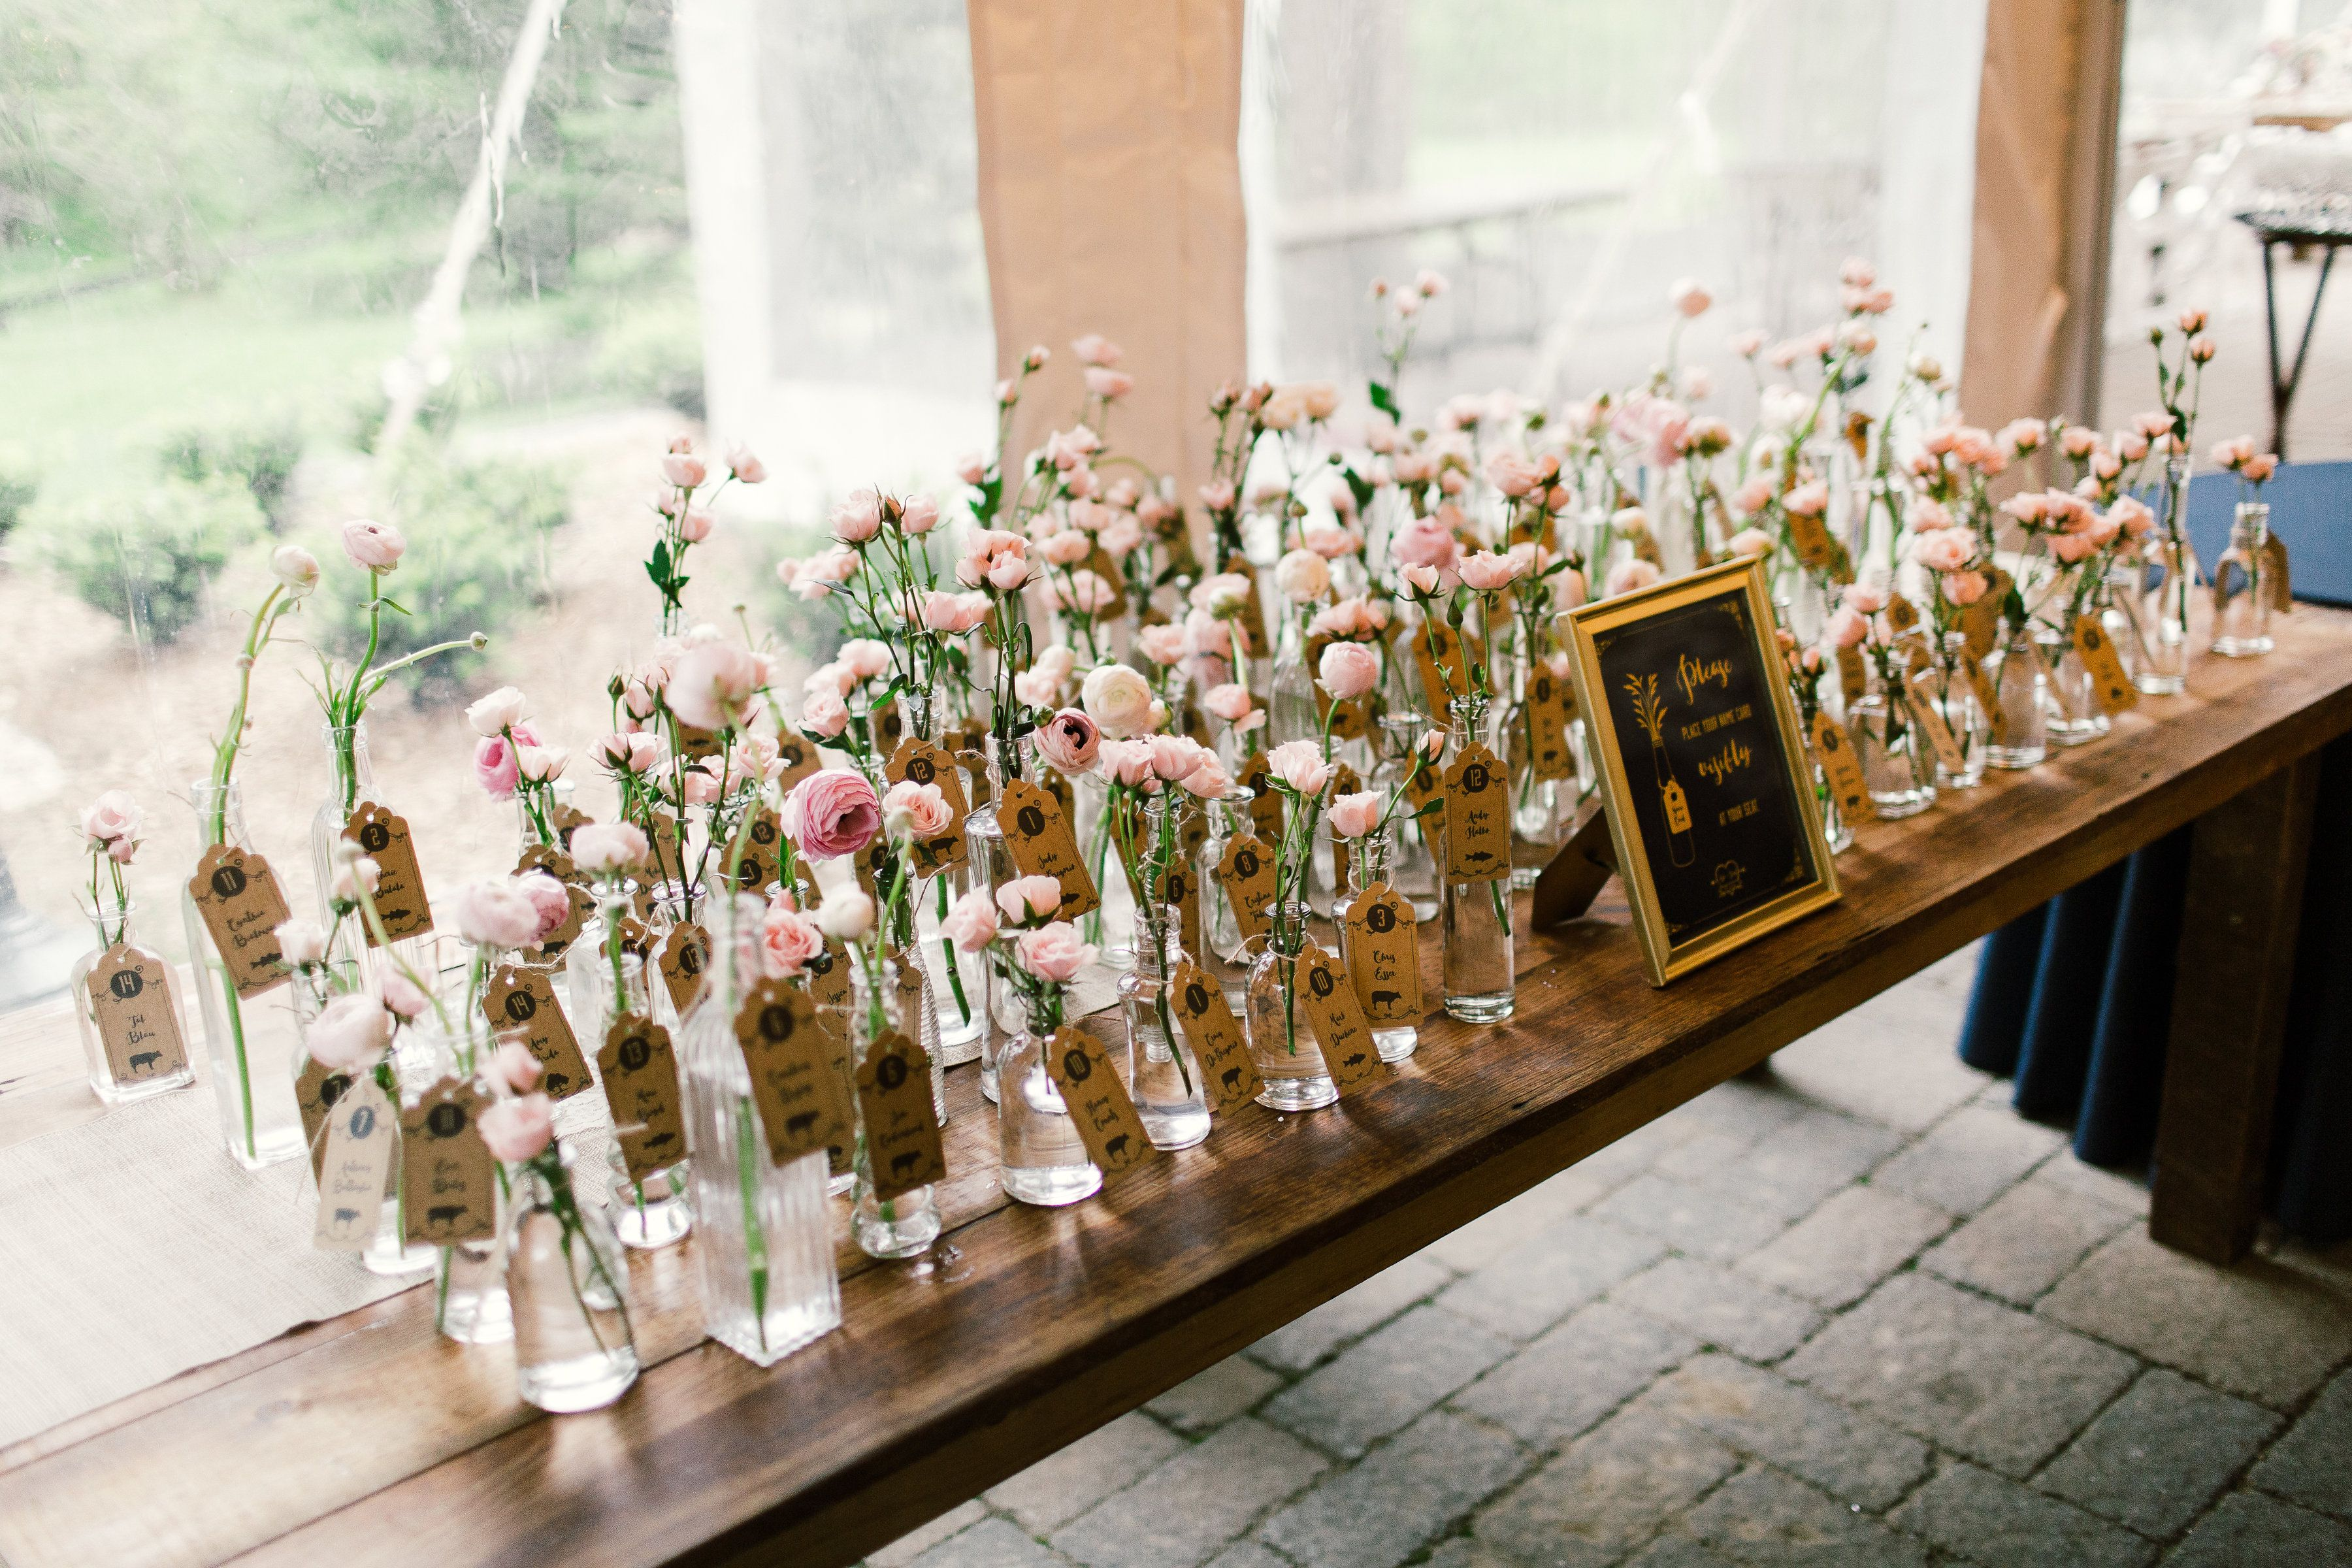 Sprigs of pink spray roses and ranunculus fill the collection of